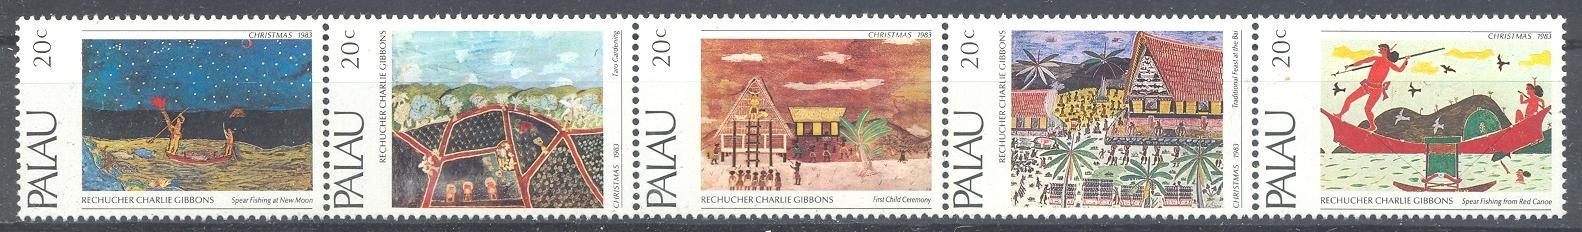 Stamps with Ship, Art from Palau (image for product #044516)